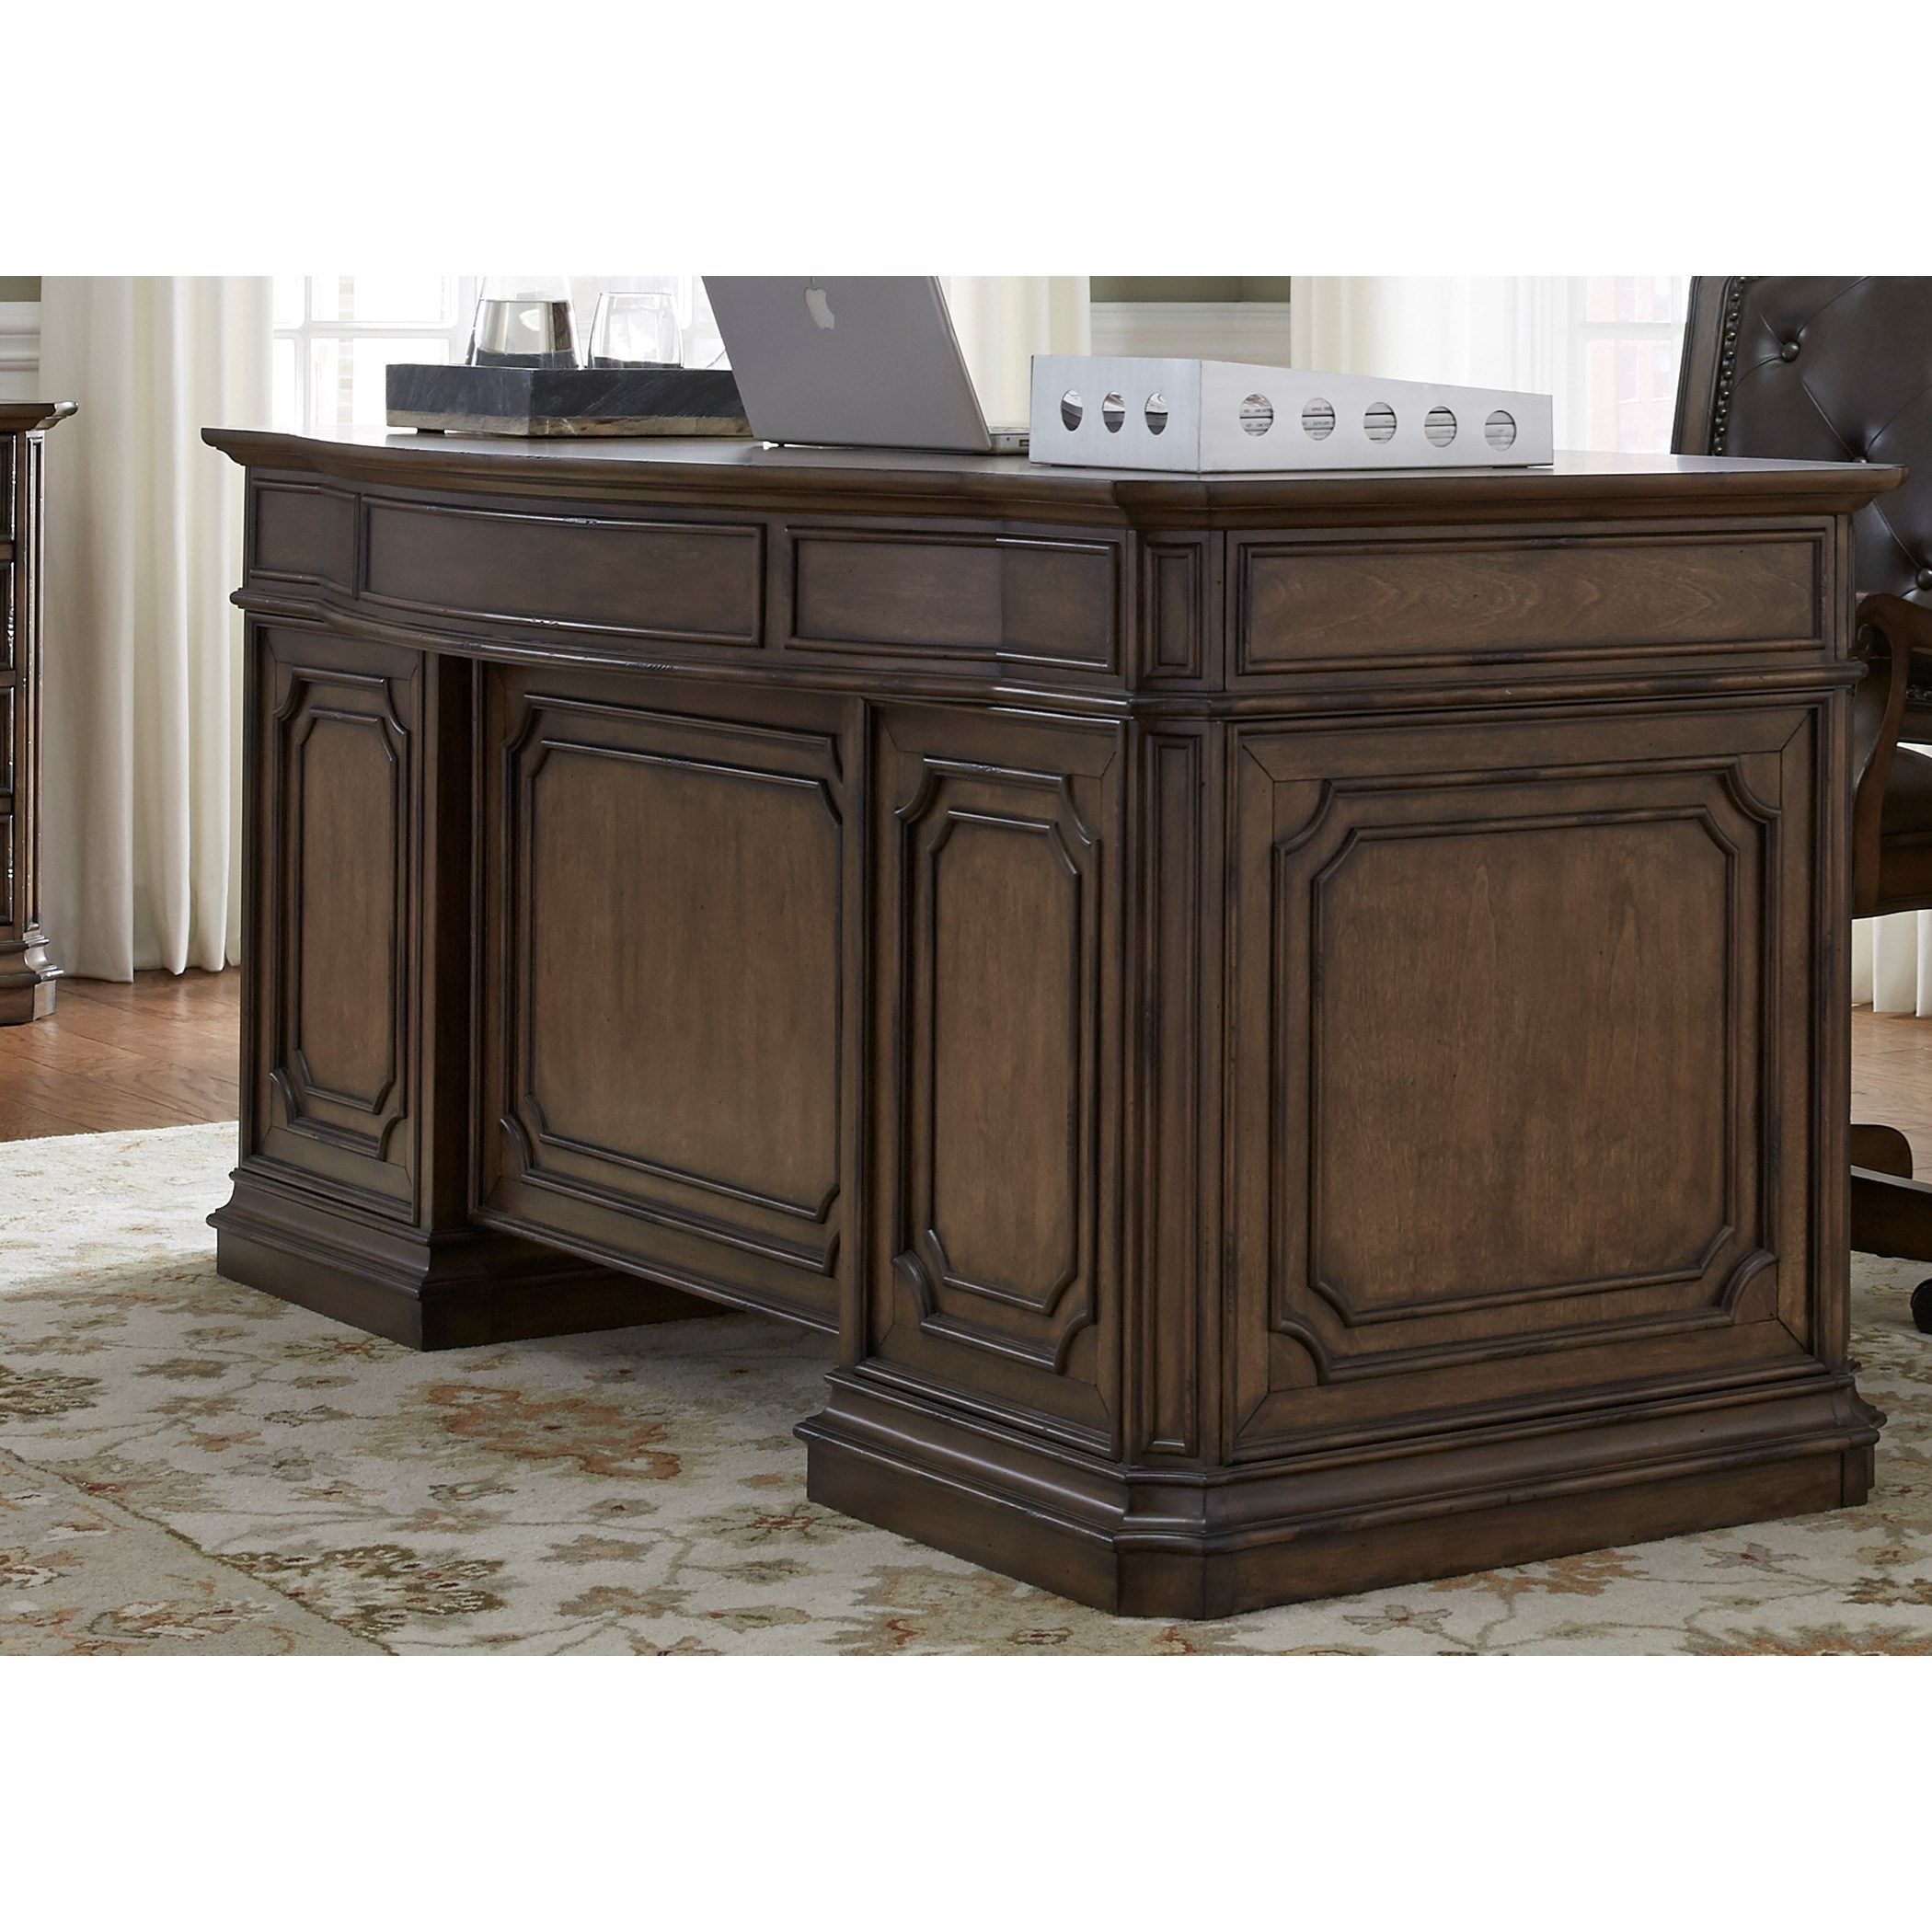 Amelia Home Office Jr Executive Desk  by Liberty Furniture at Van Hill Furniture